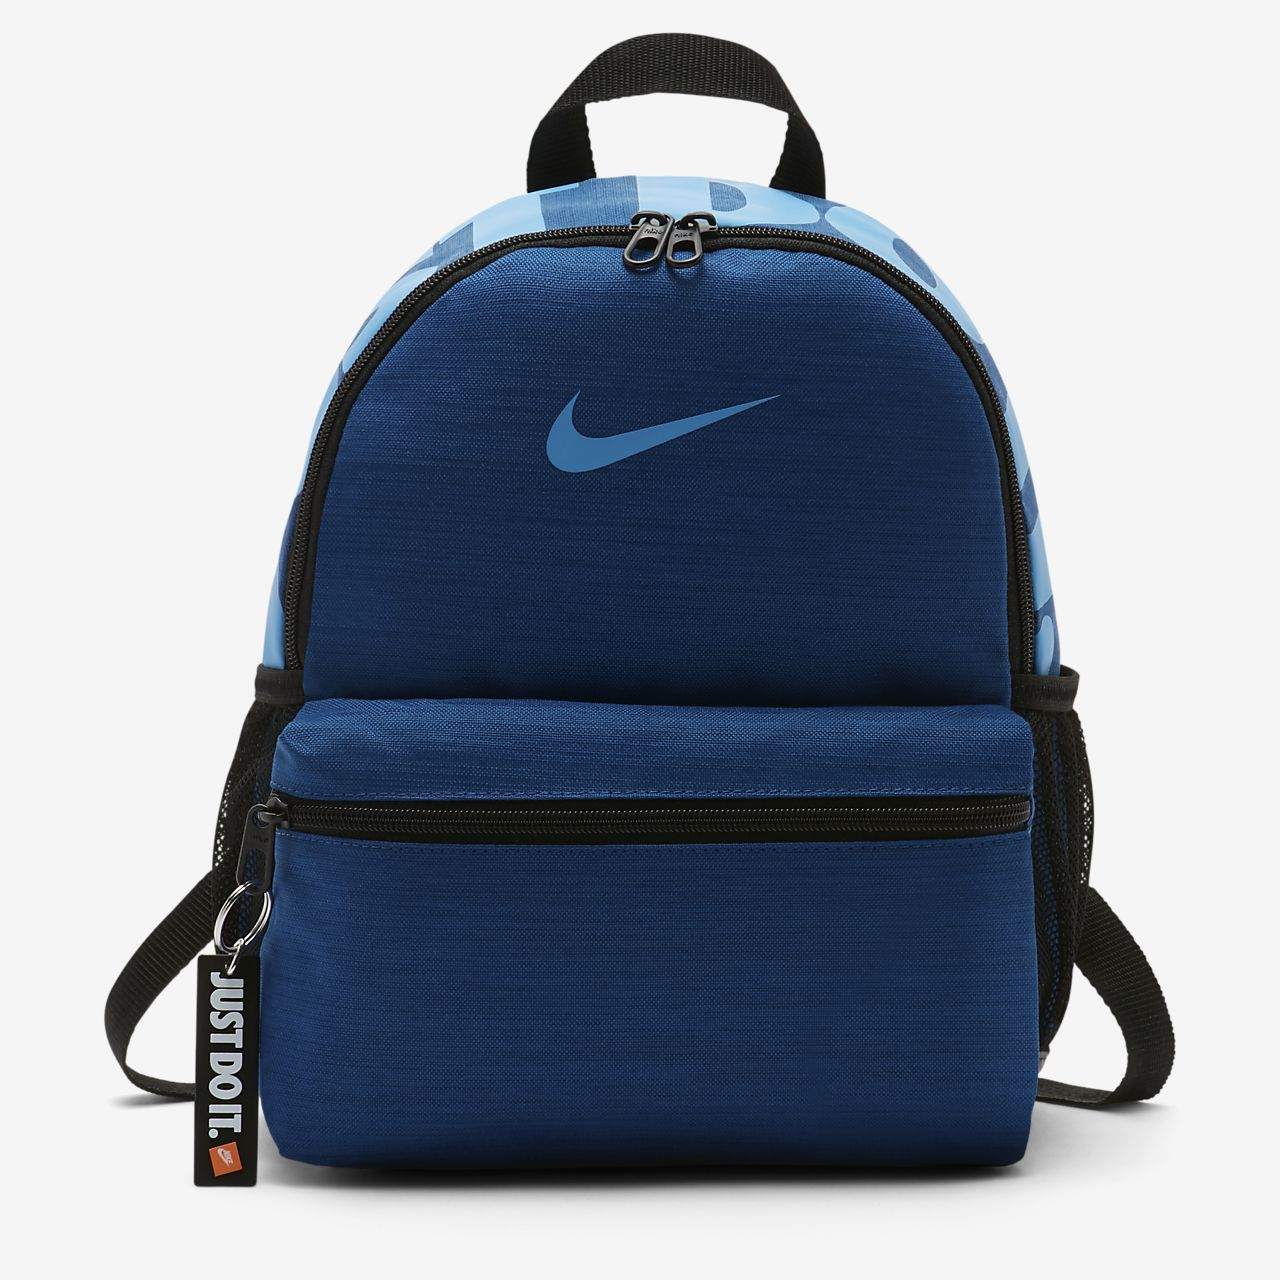 Sac Nike Just It Pour À Dos Do EnfantminiCa Brasilia VUqzGSMp